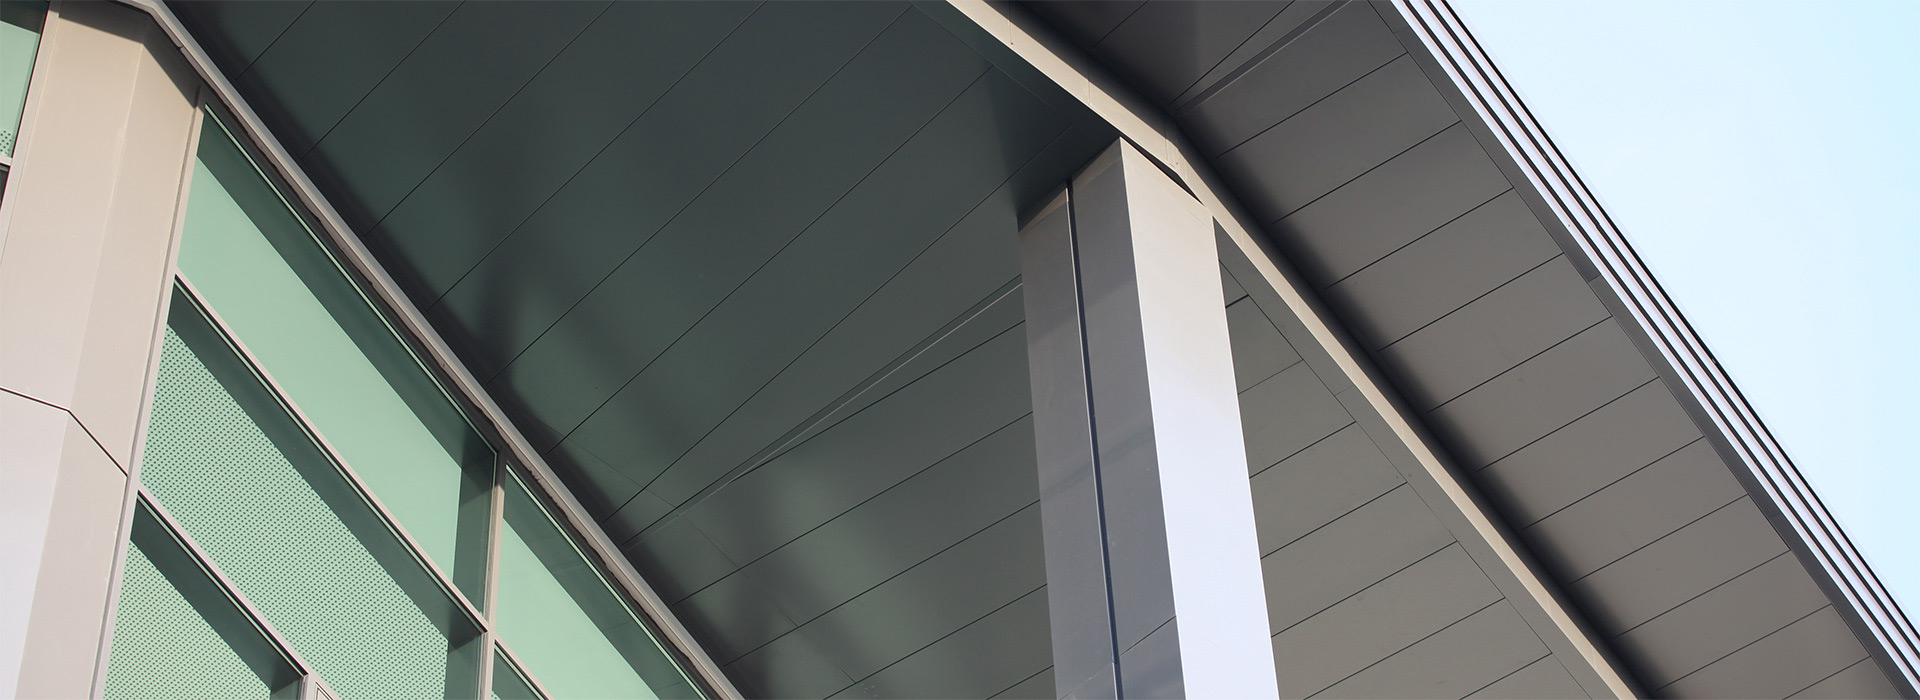 husk architectural aluminium soffits hammersmith academy